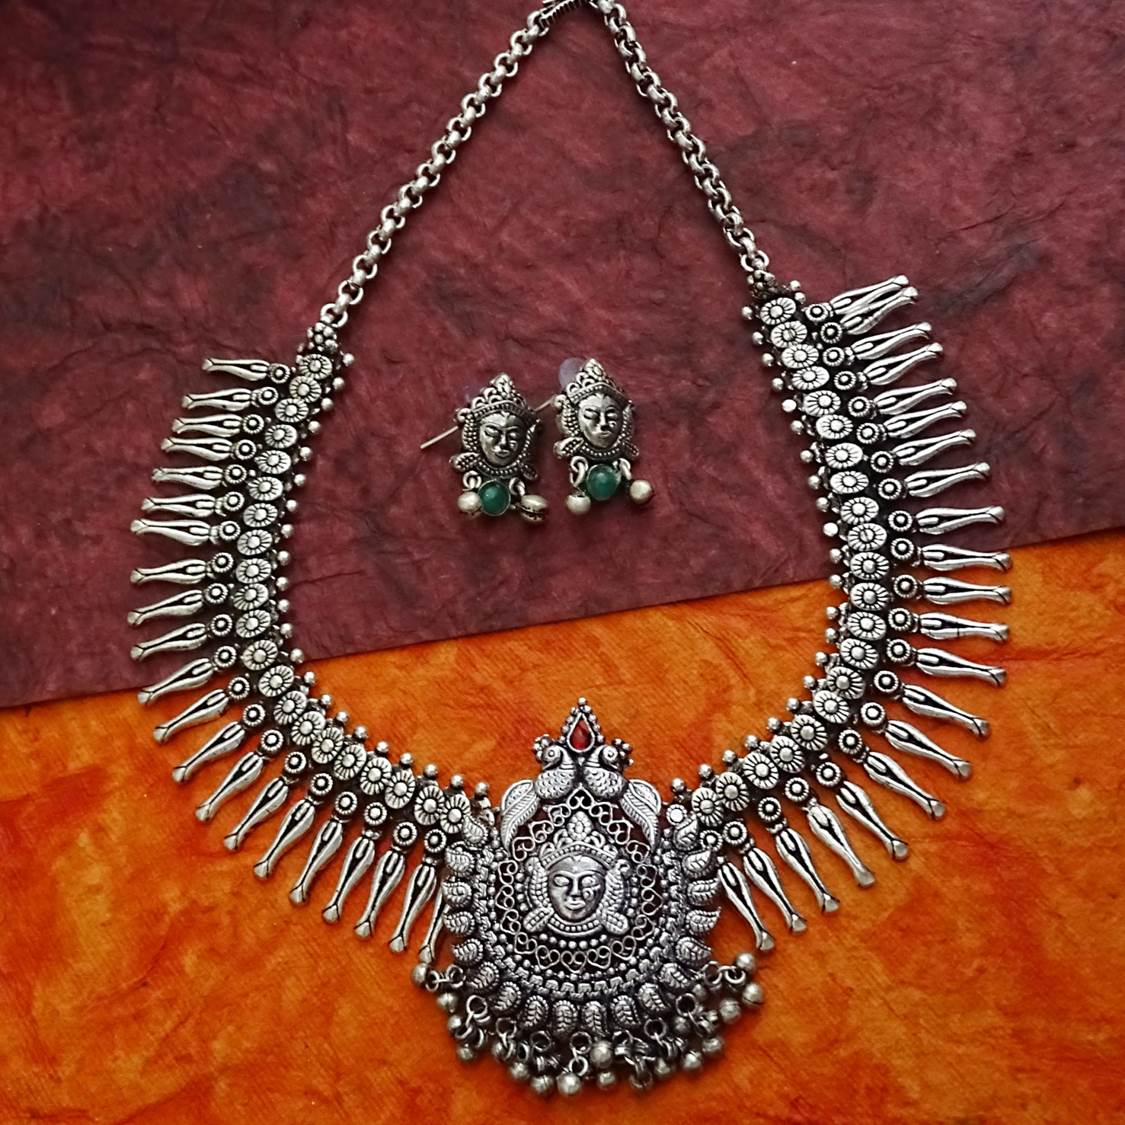 Oxidized German Silver Durgama And Peacock Design Temple Necklace Set-GEMS N PEARLS-Necklace Set